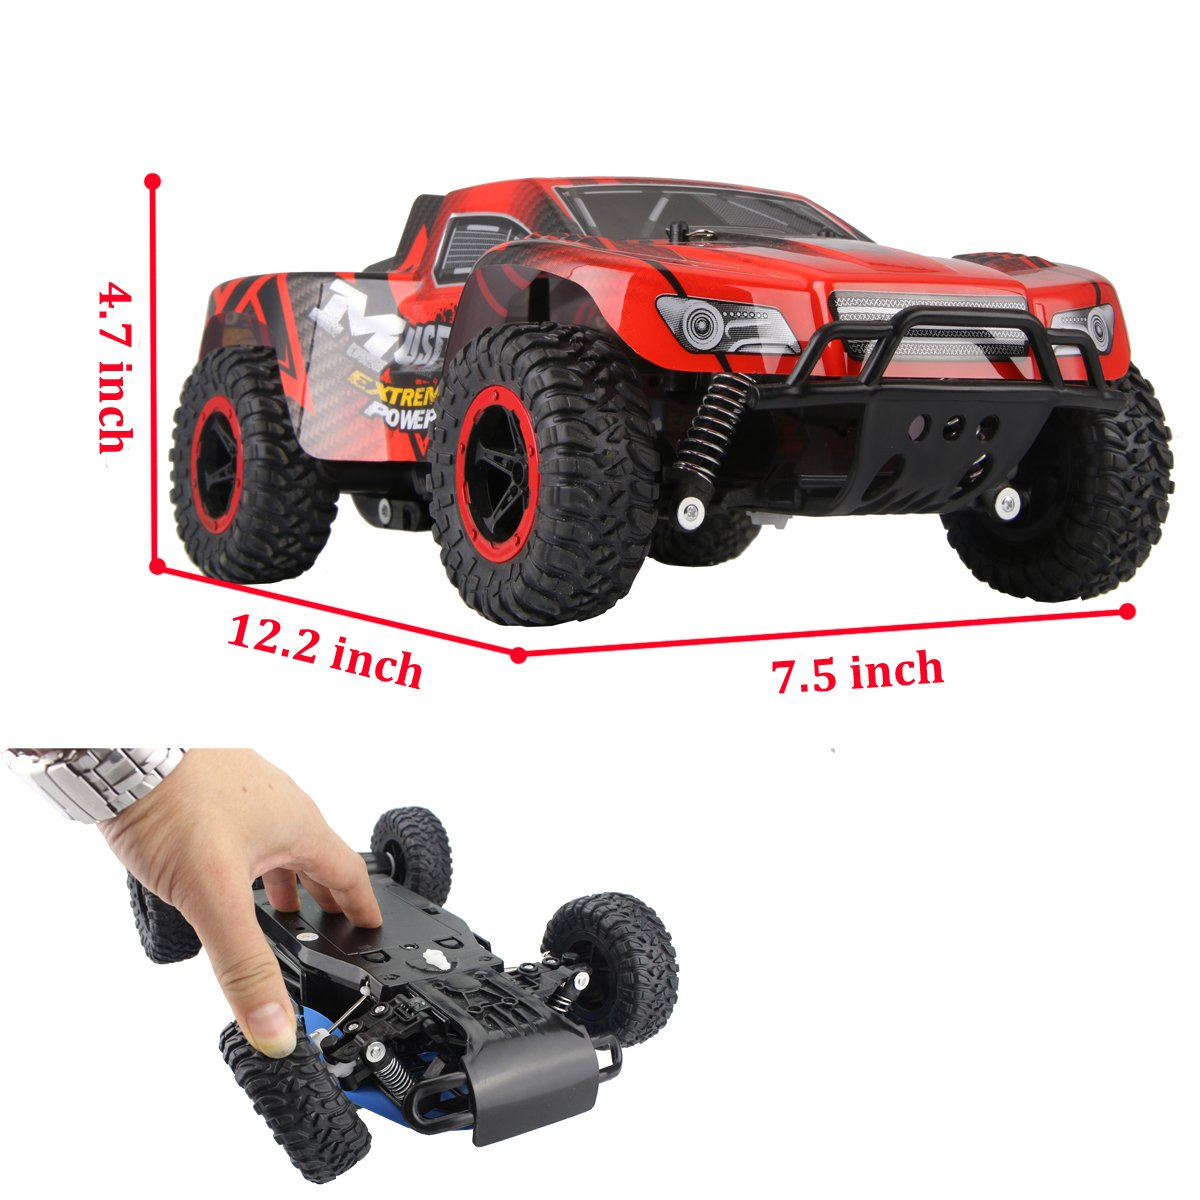 Hugine 1:16 20Km/h High Speed RC Car Off Road Vehicle 2.4G Racing Cars Rock Crawler Monster Truck Dune Buggy Extreme Independent Suspension Radio Control Cars For Kids Adults Hobby Toys (Red)